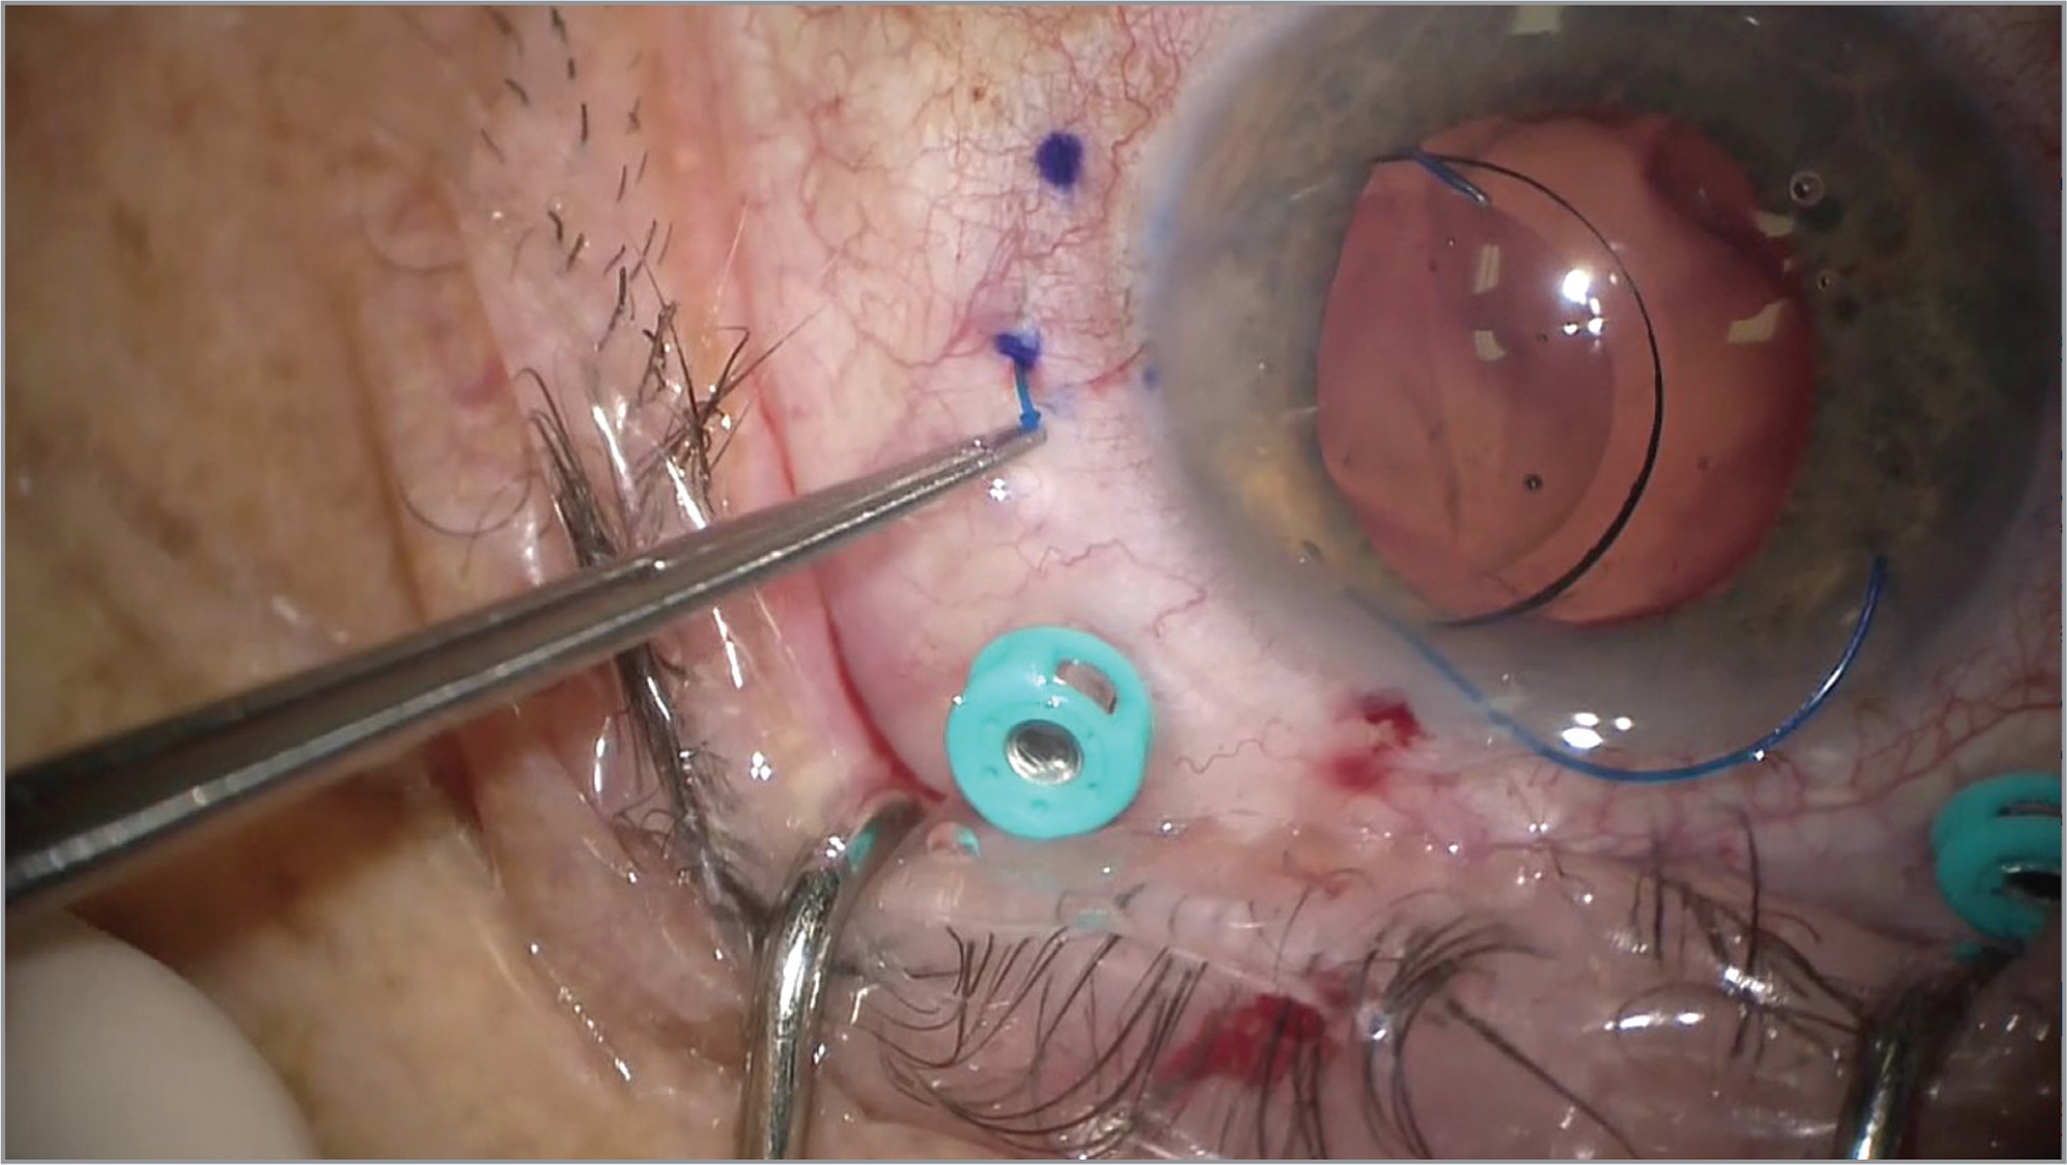 The tip of the leading haptic is externalized and thermally deformed before the intrascleral fixation of the trailing haptic, a step that increases the safety of this surgical modification.